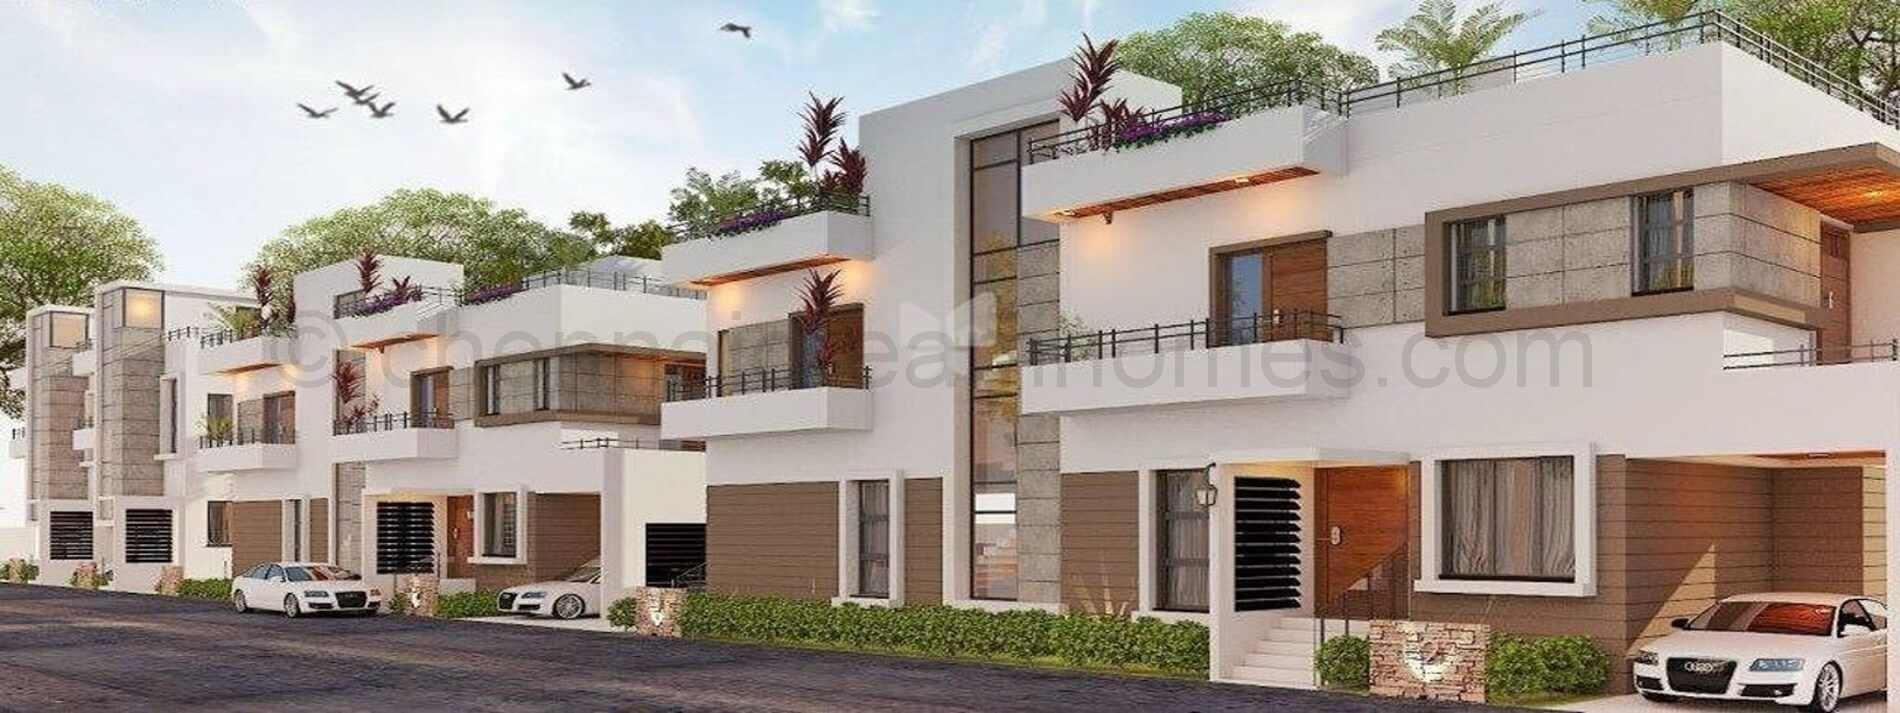 3 BHK Duplex Villas for sale in OMR